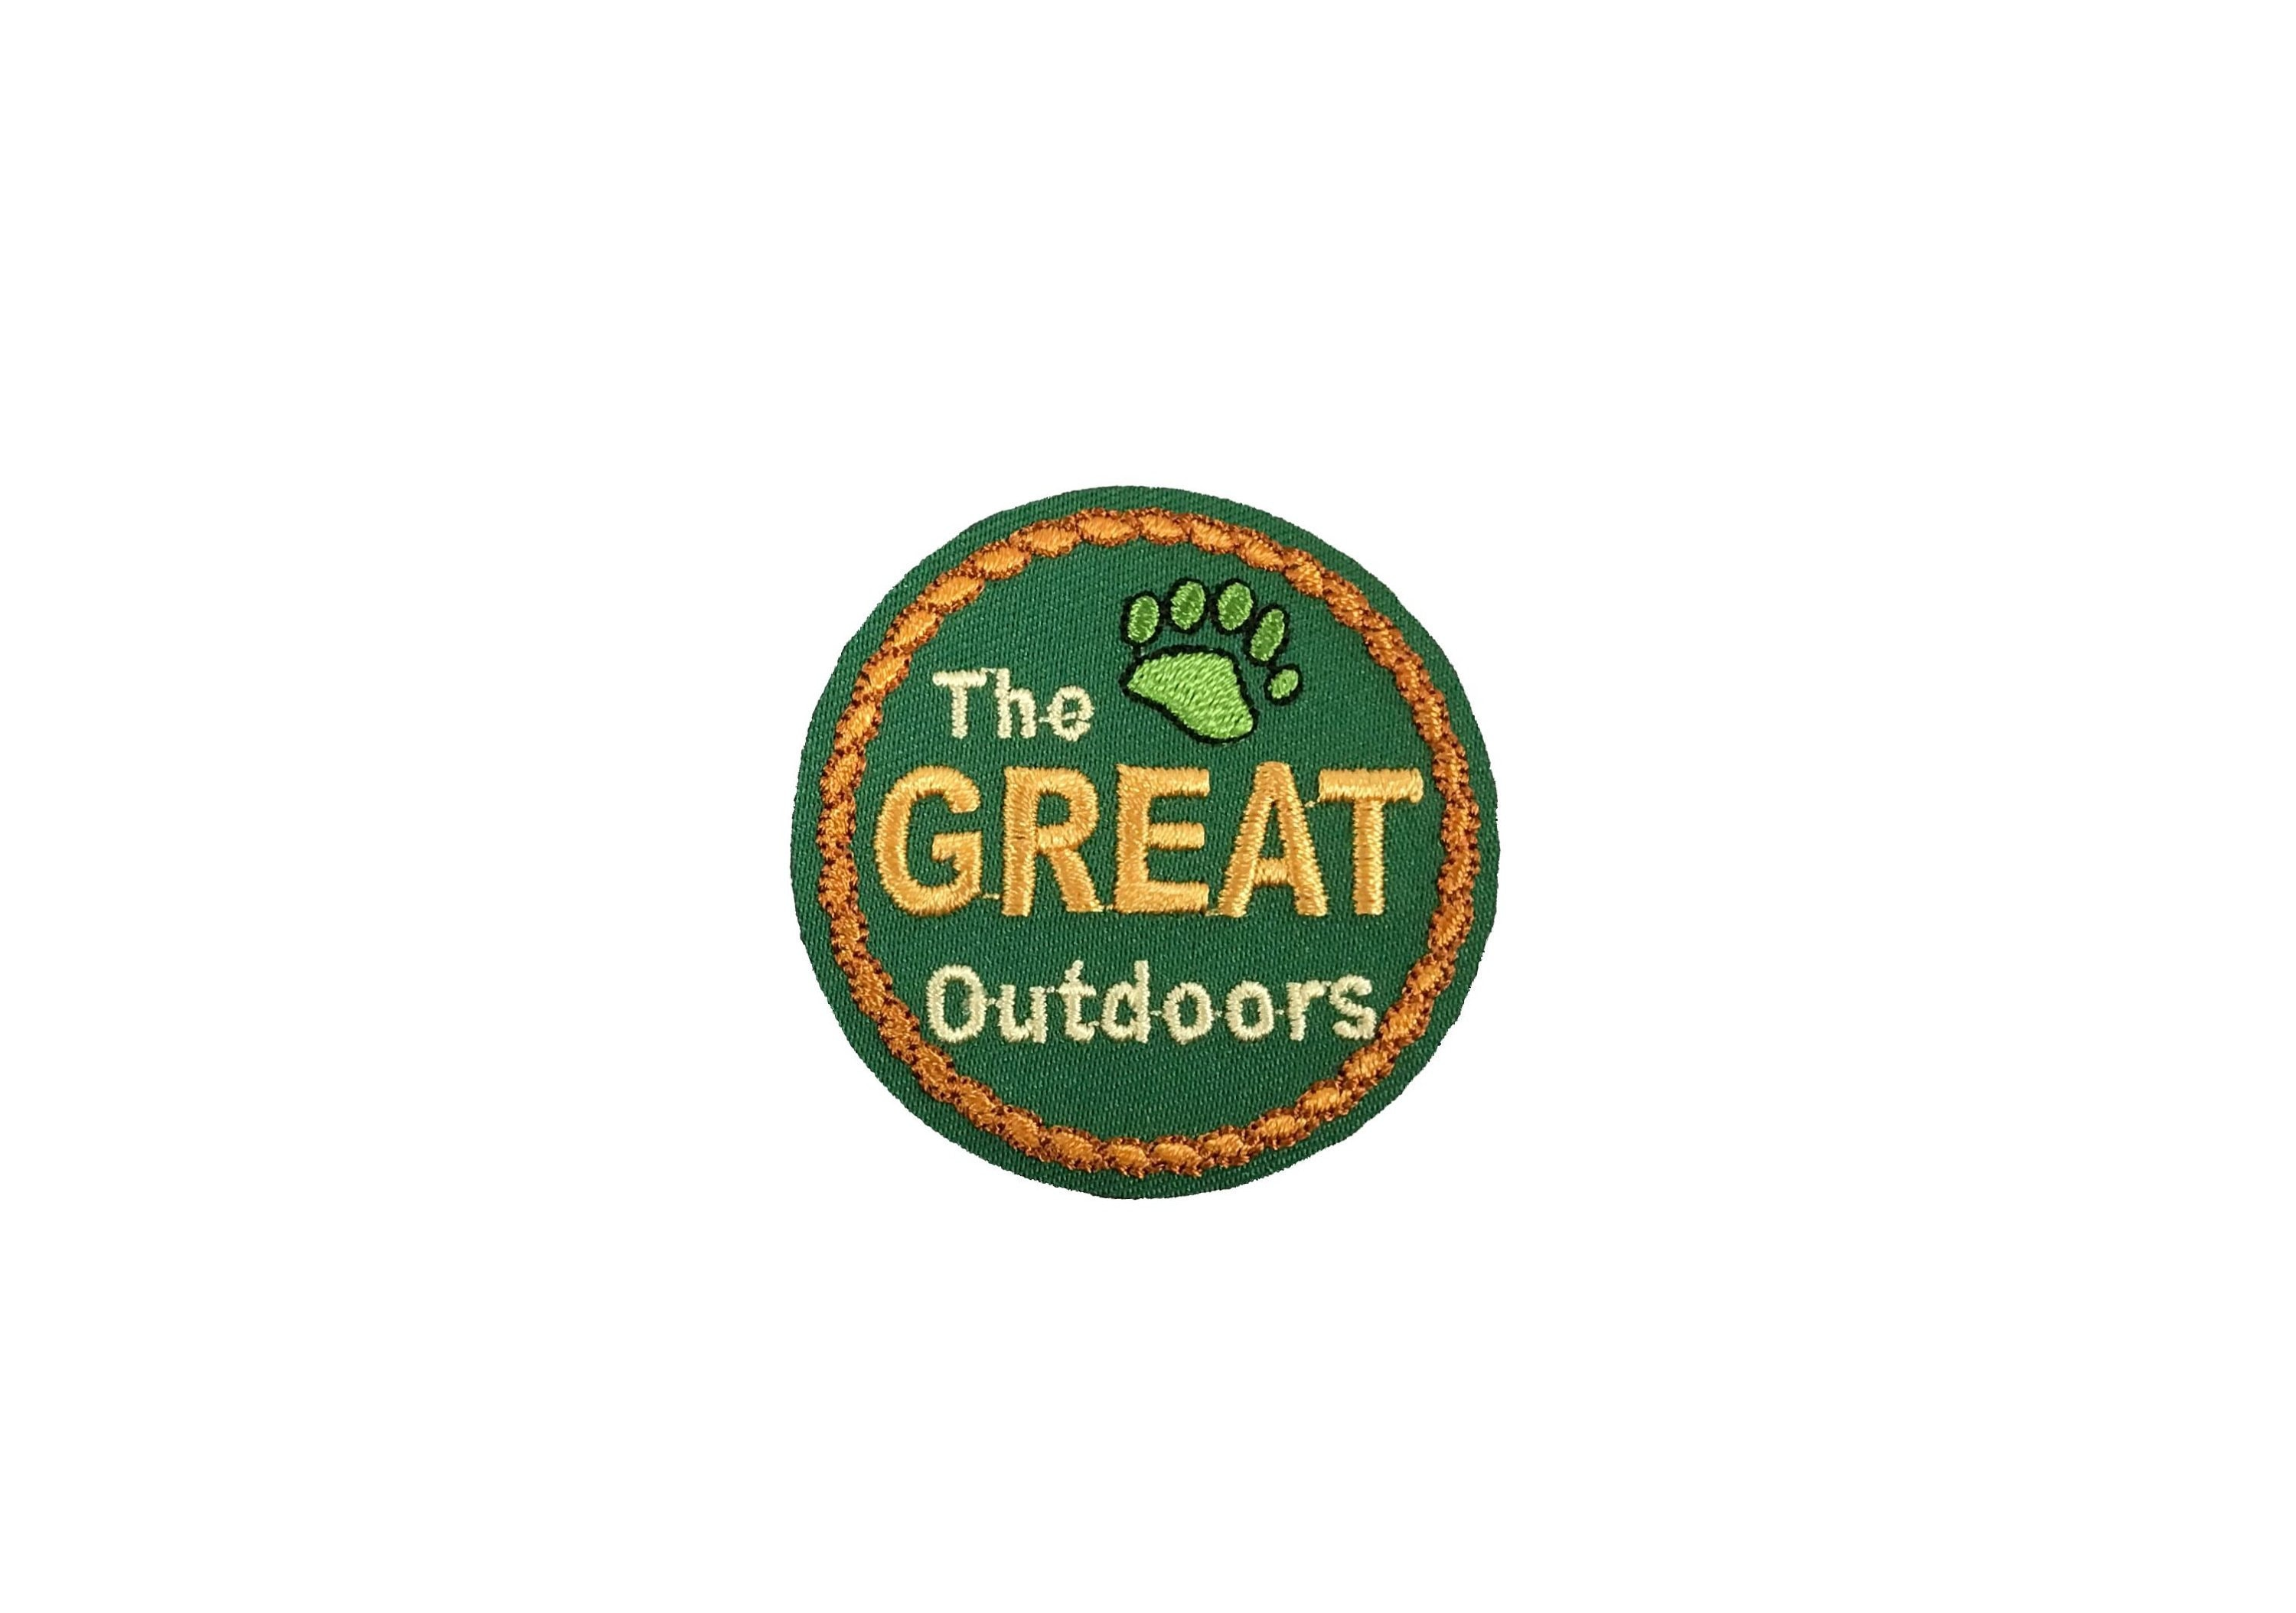 Camping//Camp Fire//Outdoors//Nature Iron on Applique//Embroidered Patch